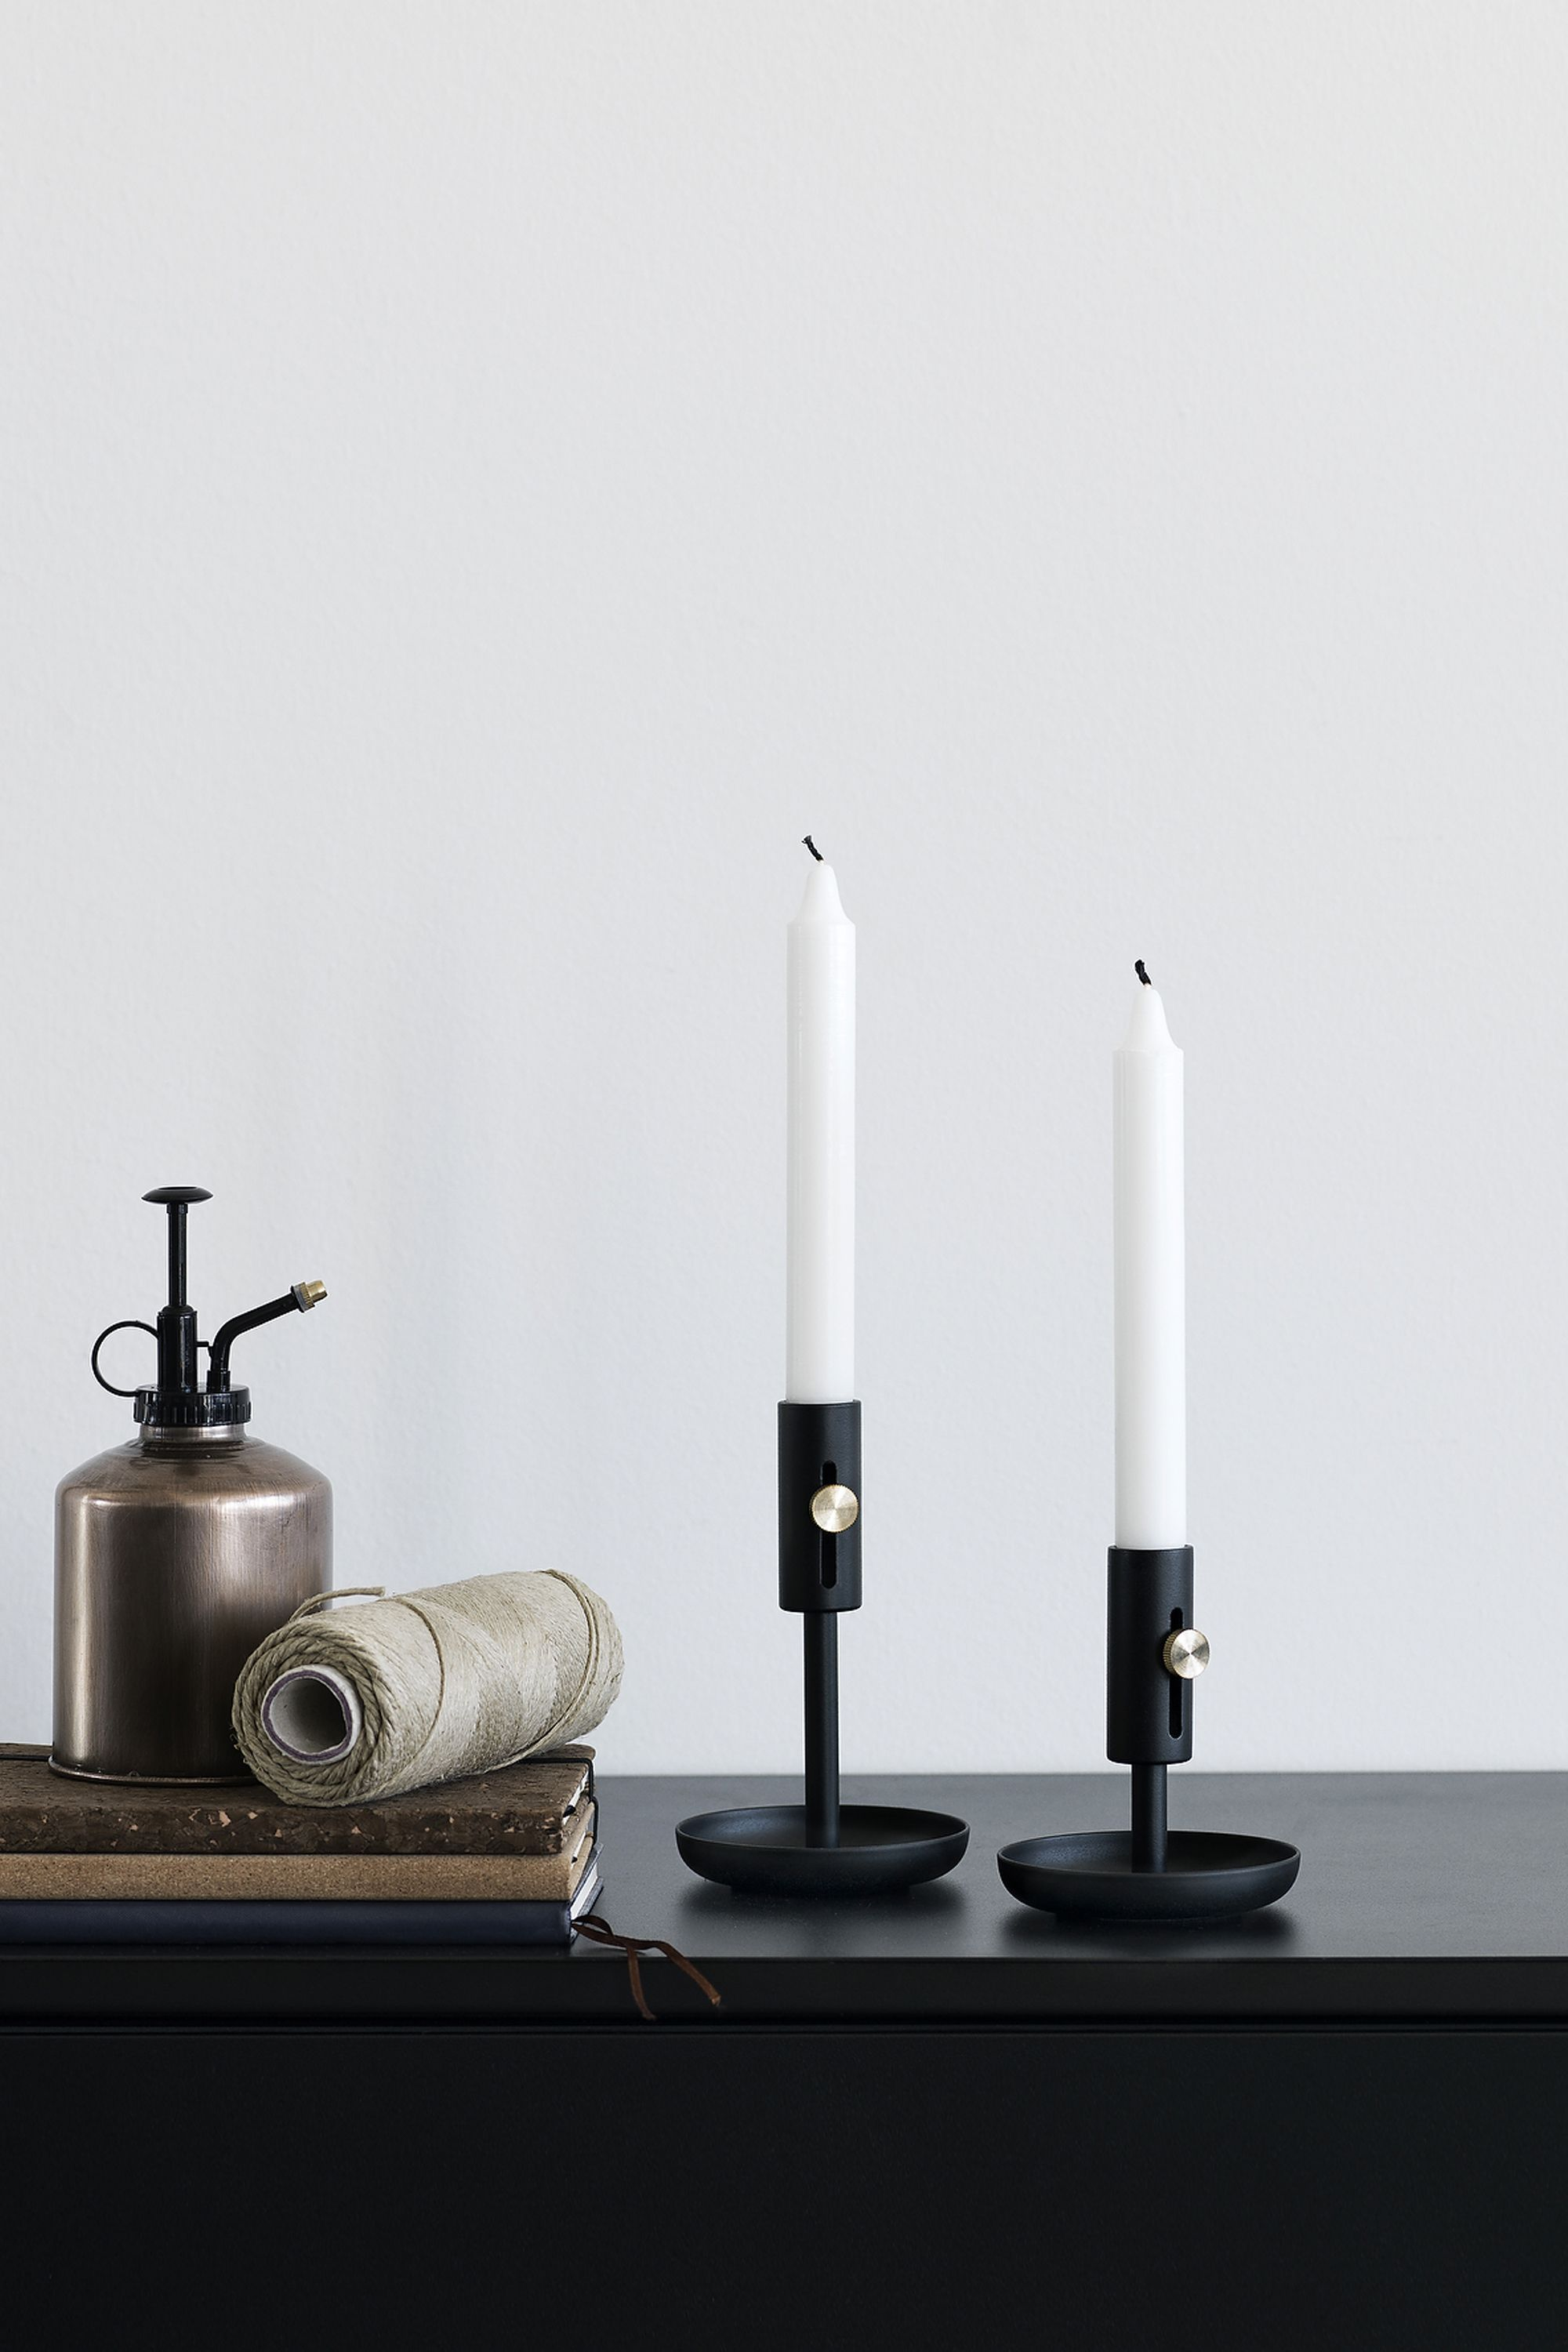 Granny Candle Holder By Northern Lighting Design Beautiful Scandinavian Designs At Nordic New From Www Nordicnew Nl Candle Holders Candles Small Candles